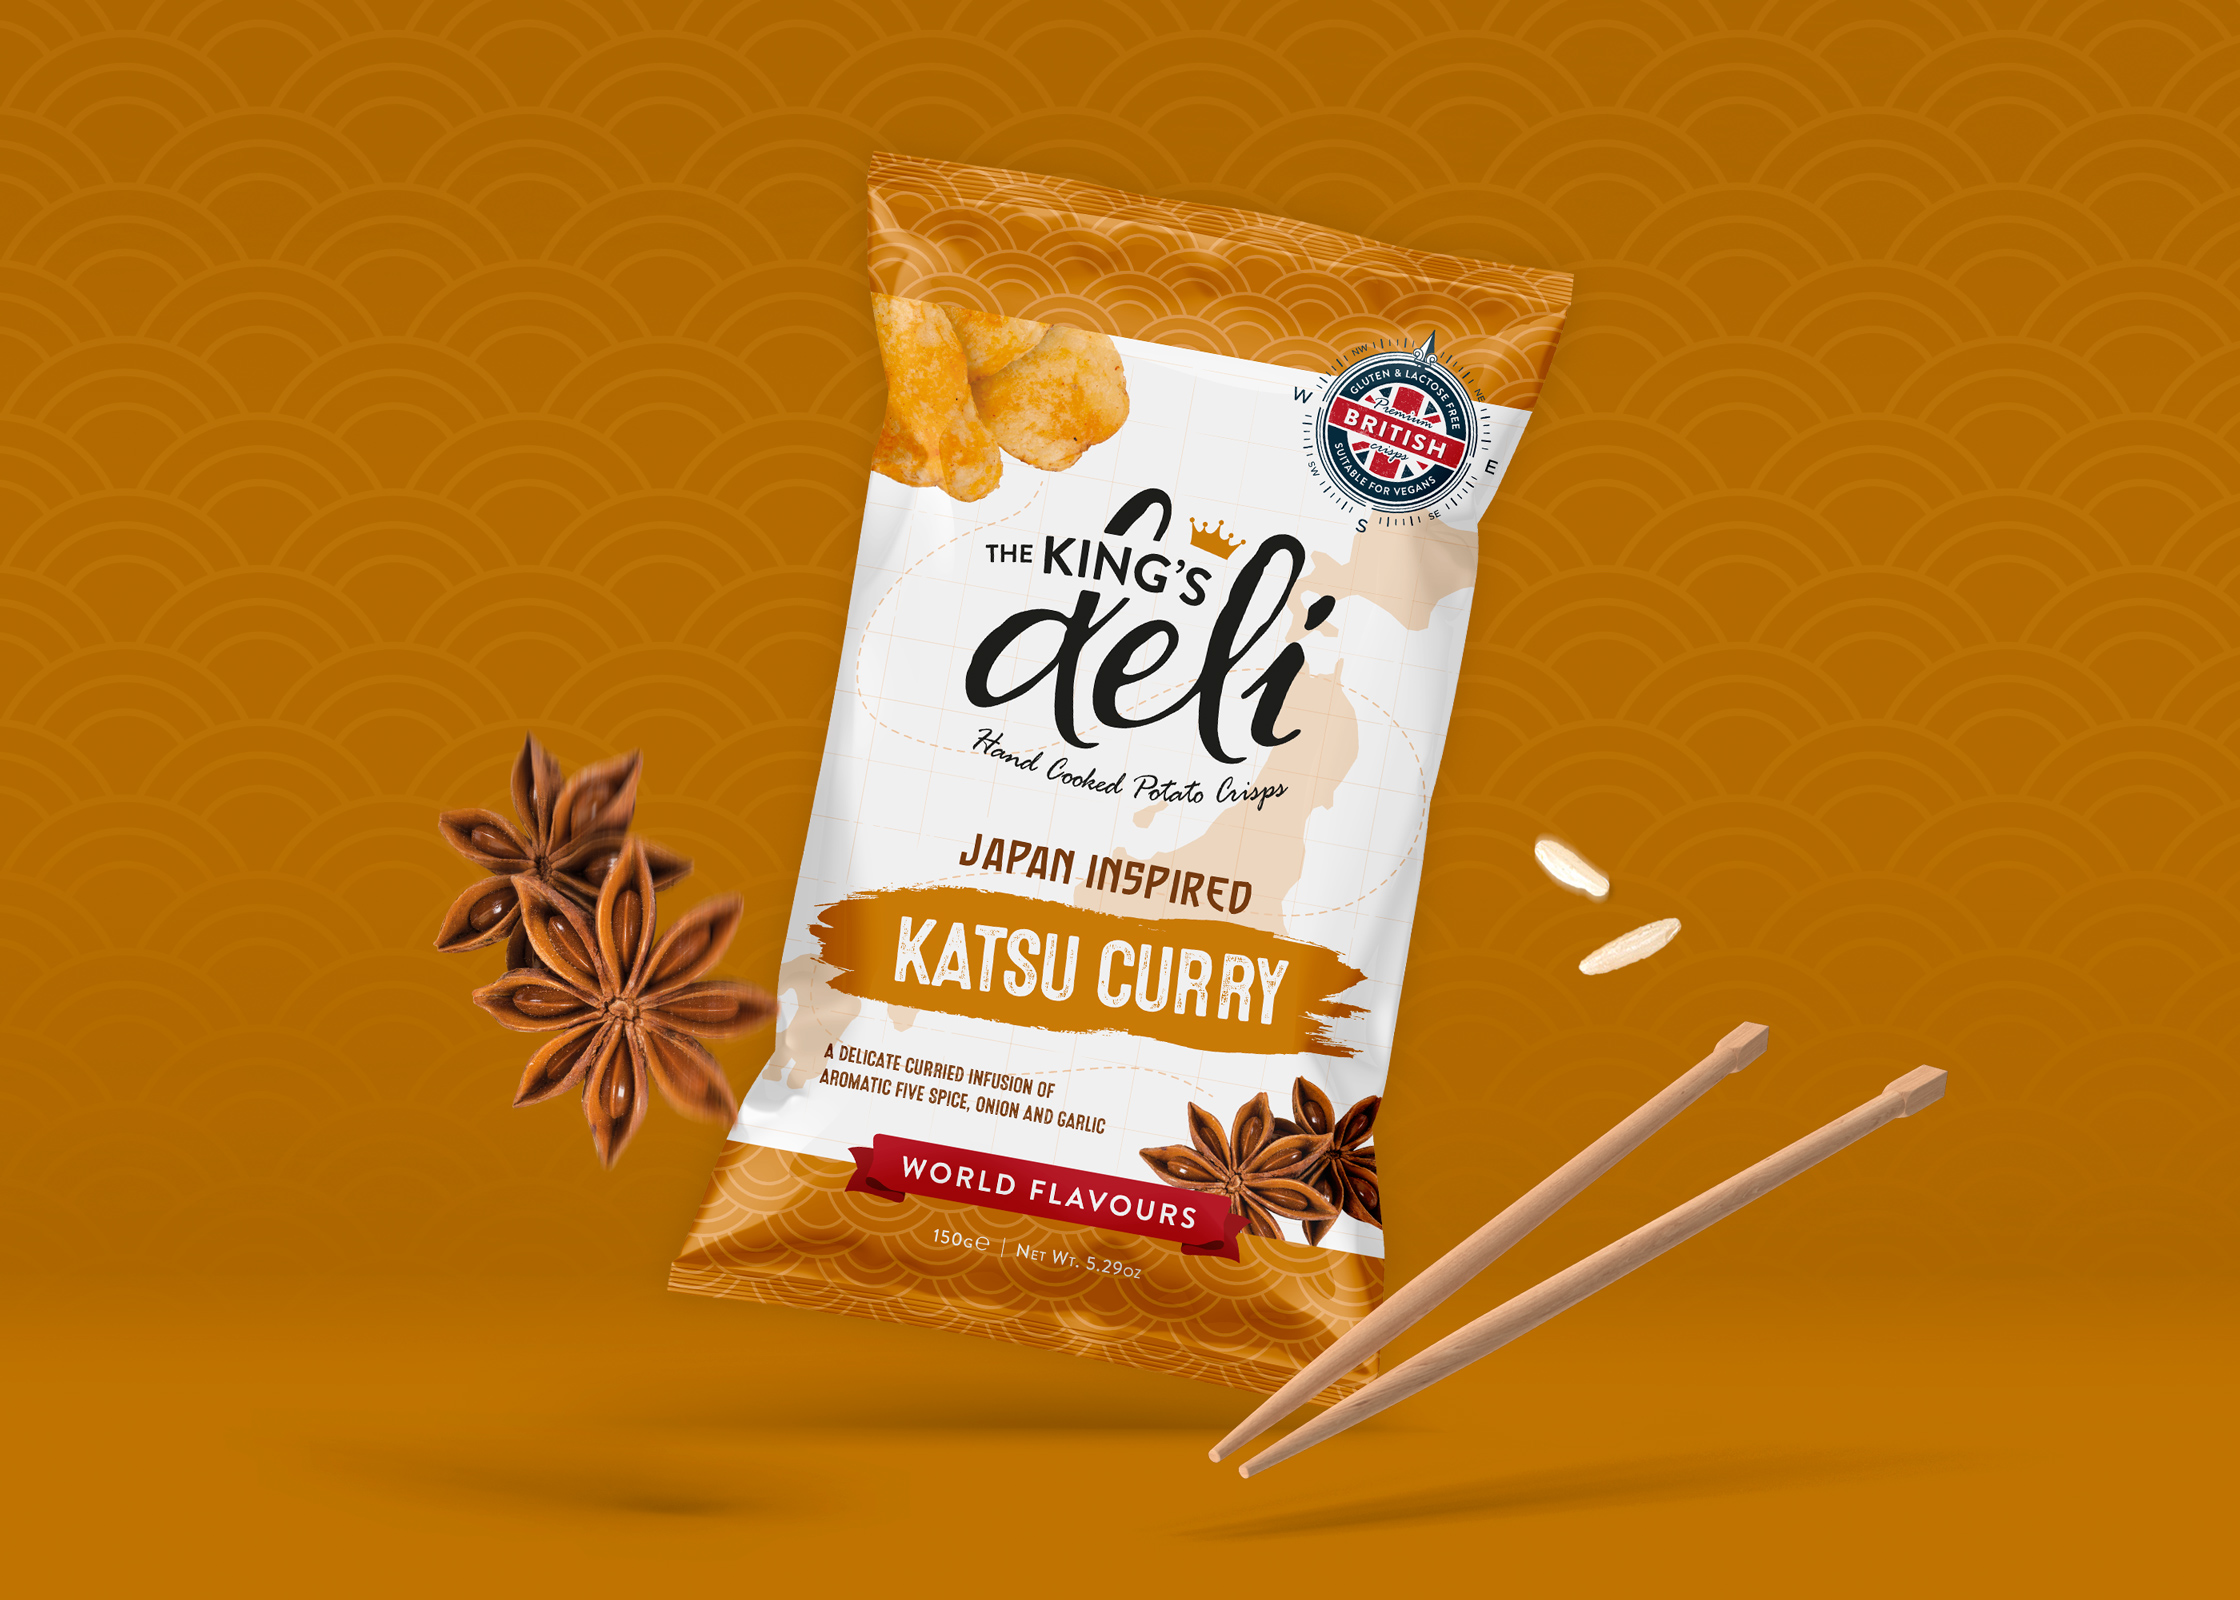 Double D Creative Creates World Flavours Range for The King's Deli